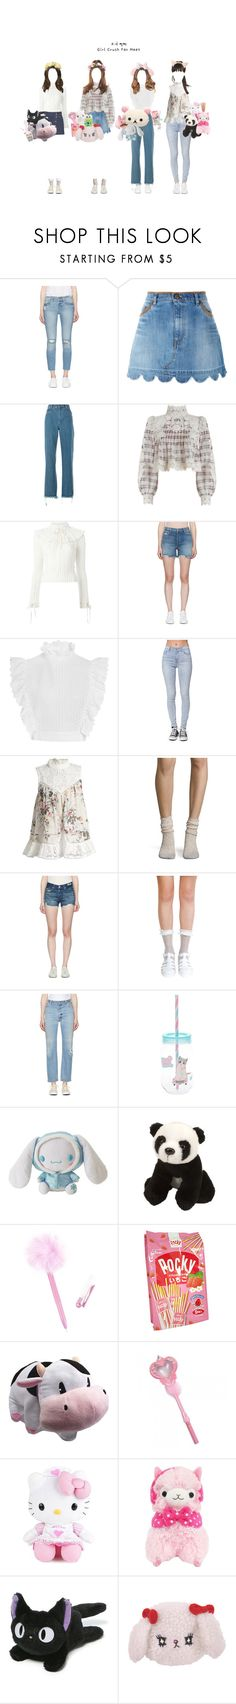 """""""GC: Fan signing @ Busan"""" by girlcrush-official ❤ liked on Polyvore featuring Frame, RED Valentino, Chloé, Zimmermann, Philosophy di Lorenzo Serafini, J Brand, Bullhead Denim Co., Free People, AMO and RE/DONE"""